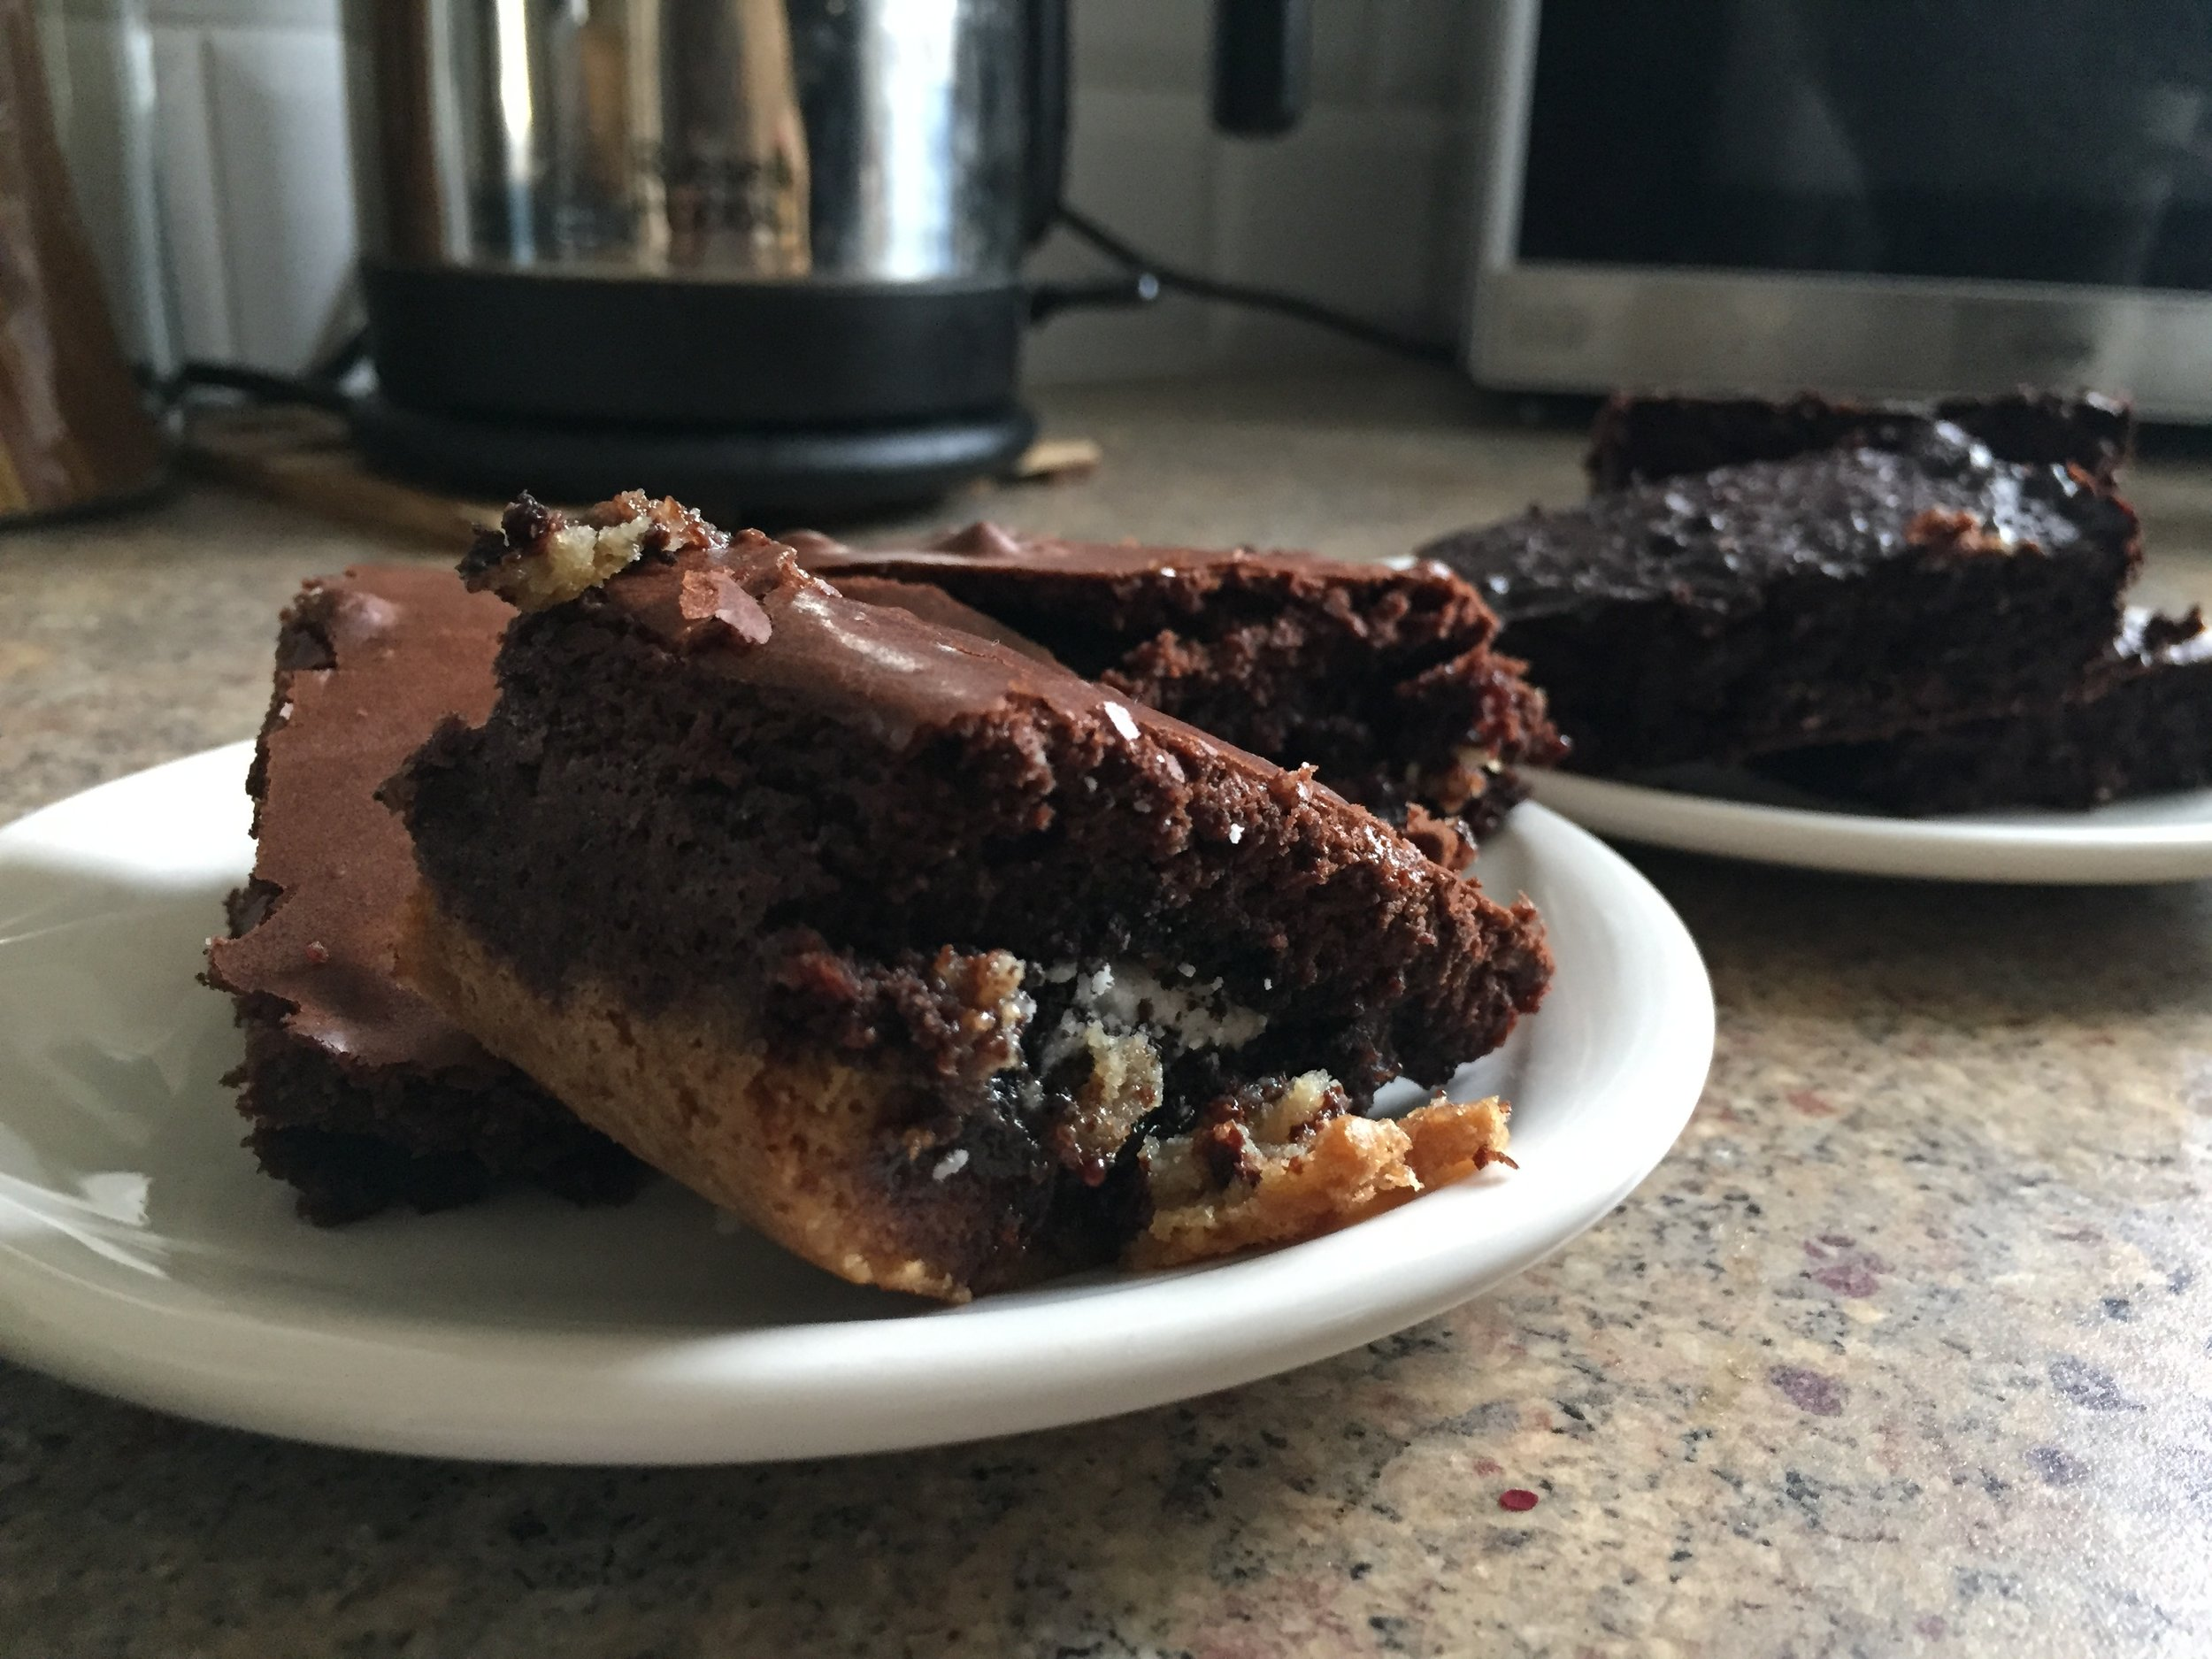 Voila, there are your slutty brownies on the left... the slightly darker ones you see on the right aren't a burnt batch haha they are actually the '100 calorie brownies', a recipe that I will share with you guys another day!